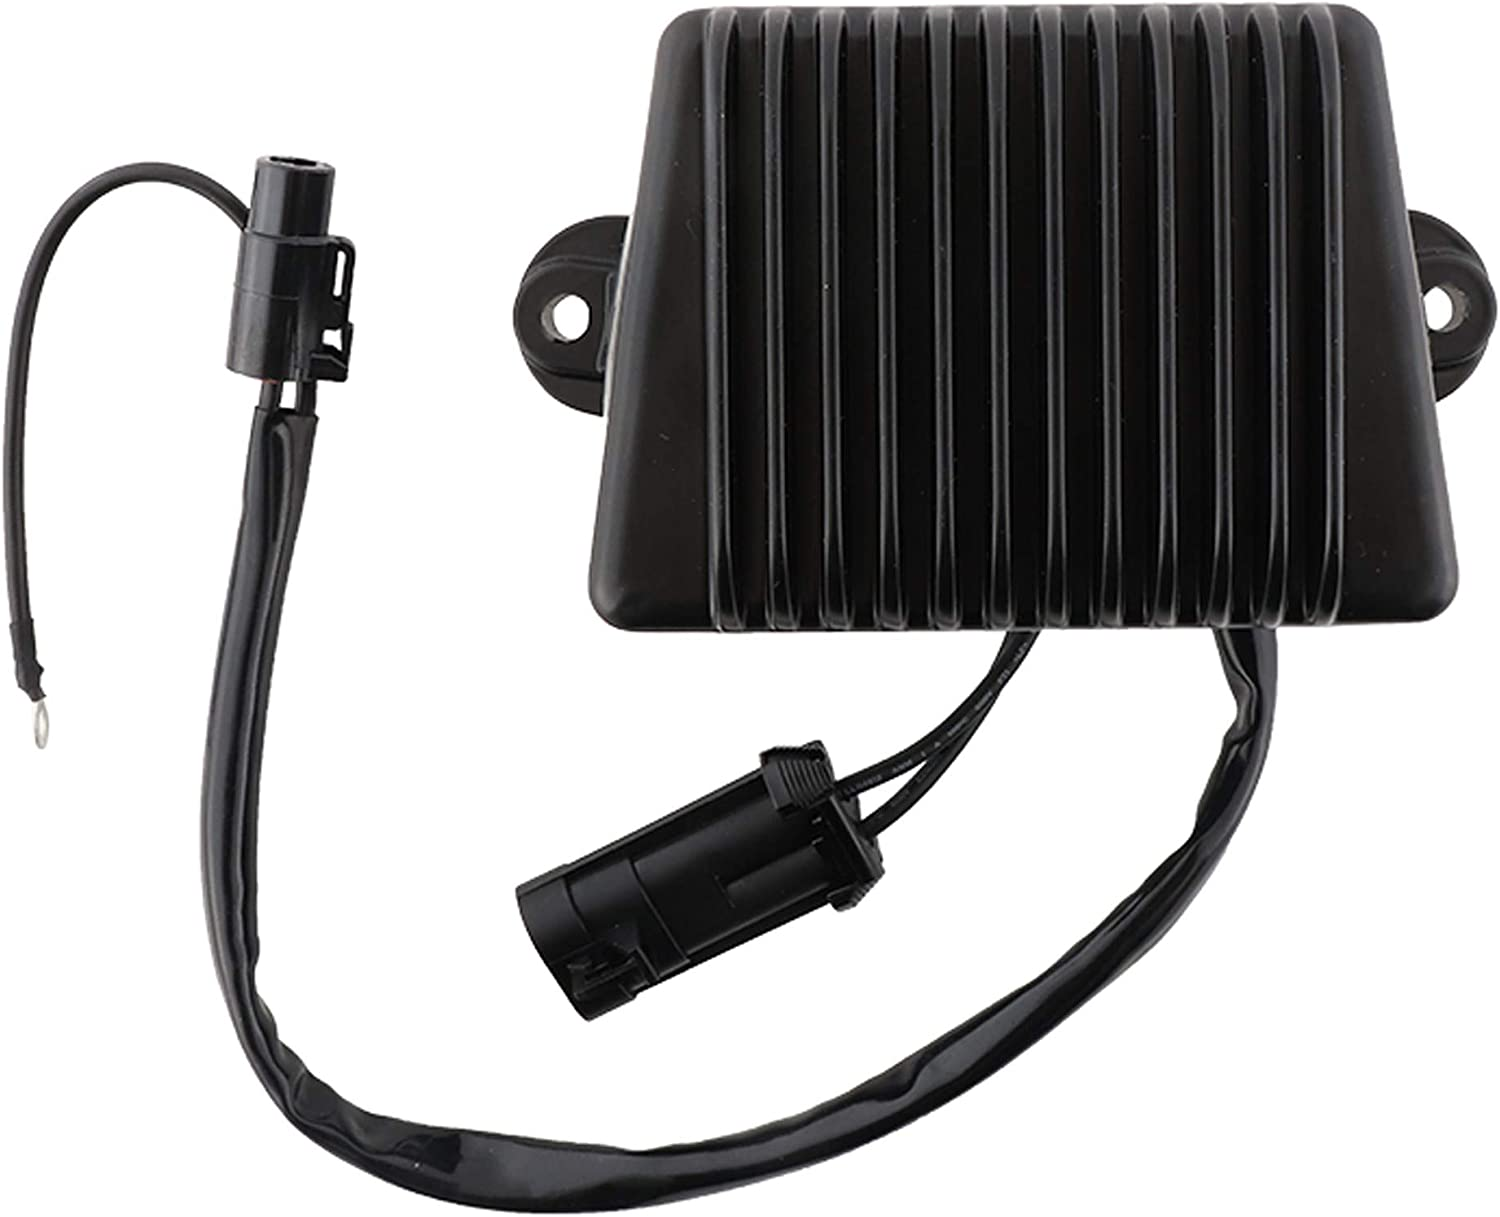 New DB Electrical Rectifier//Regulator AHD6024 Compatible with//Replacement for Harley-Davidson FLHRI Road King Police Special Edition FLTRI Road Glide 2004-2005 74505-04